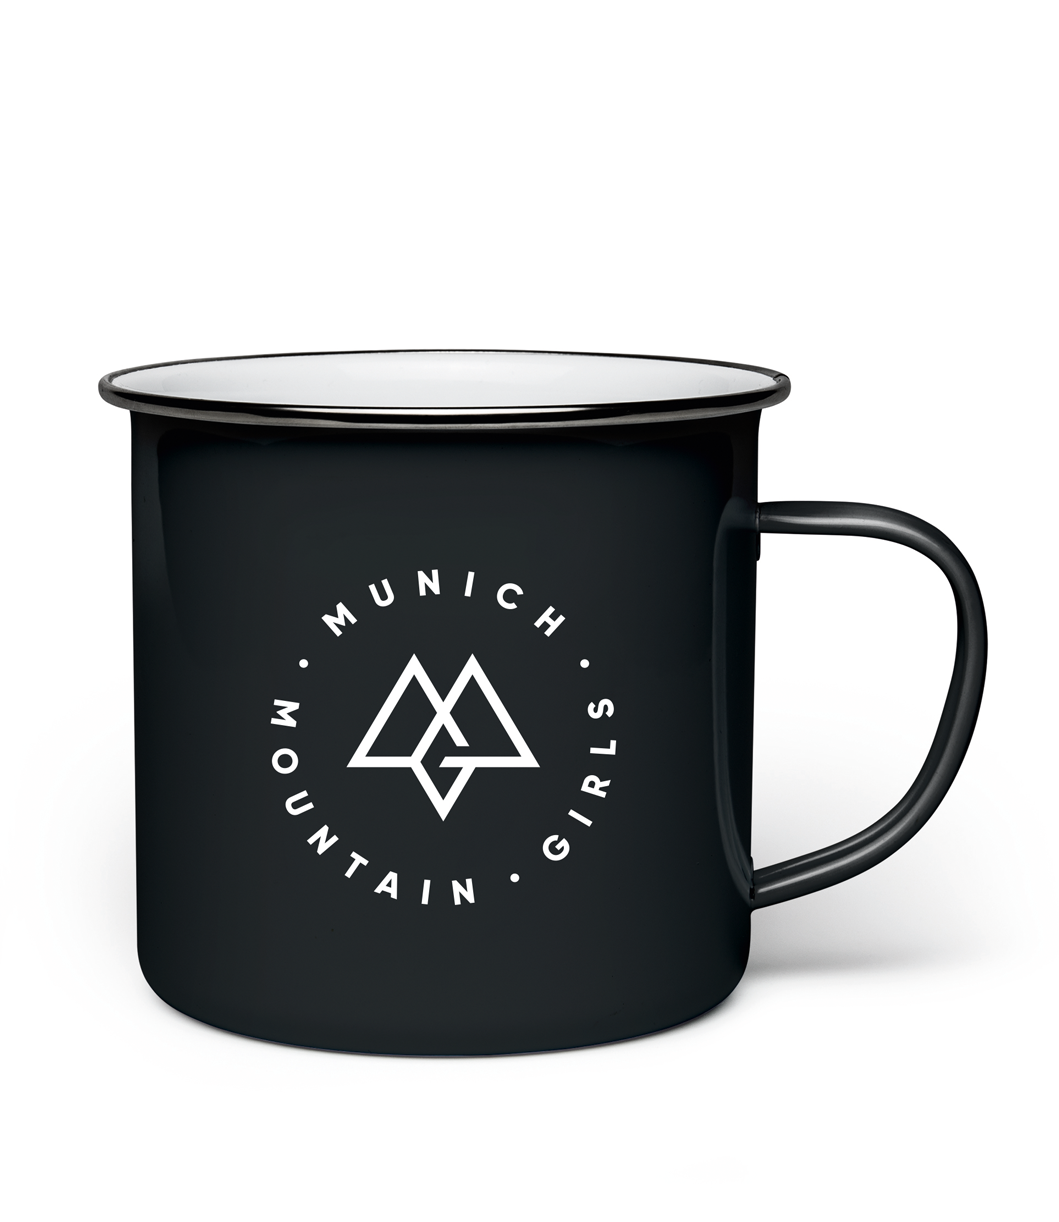 munichmountaingirls-tasse-kauflokal